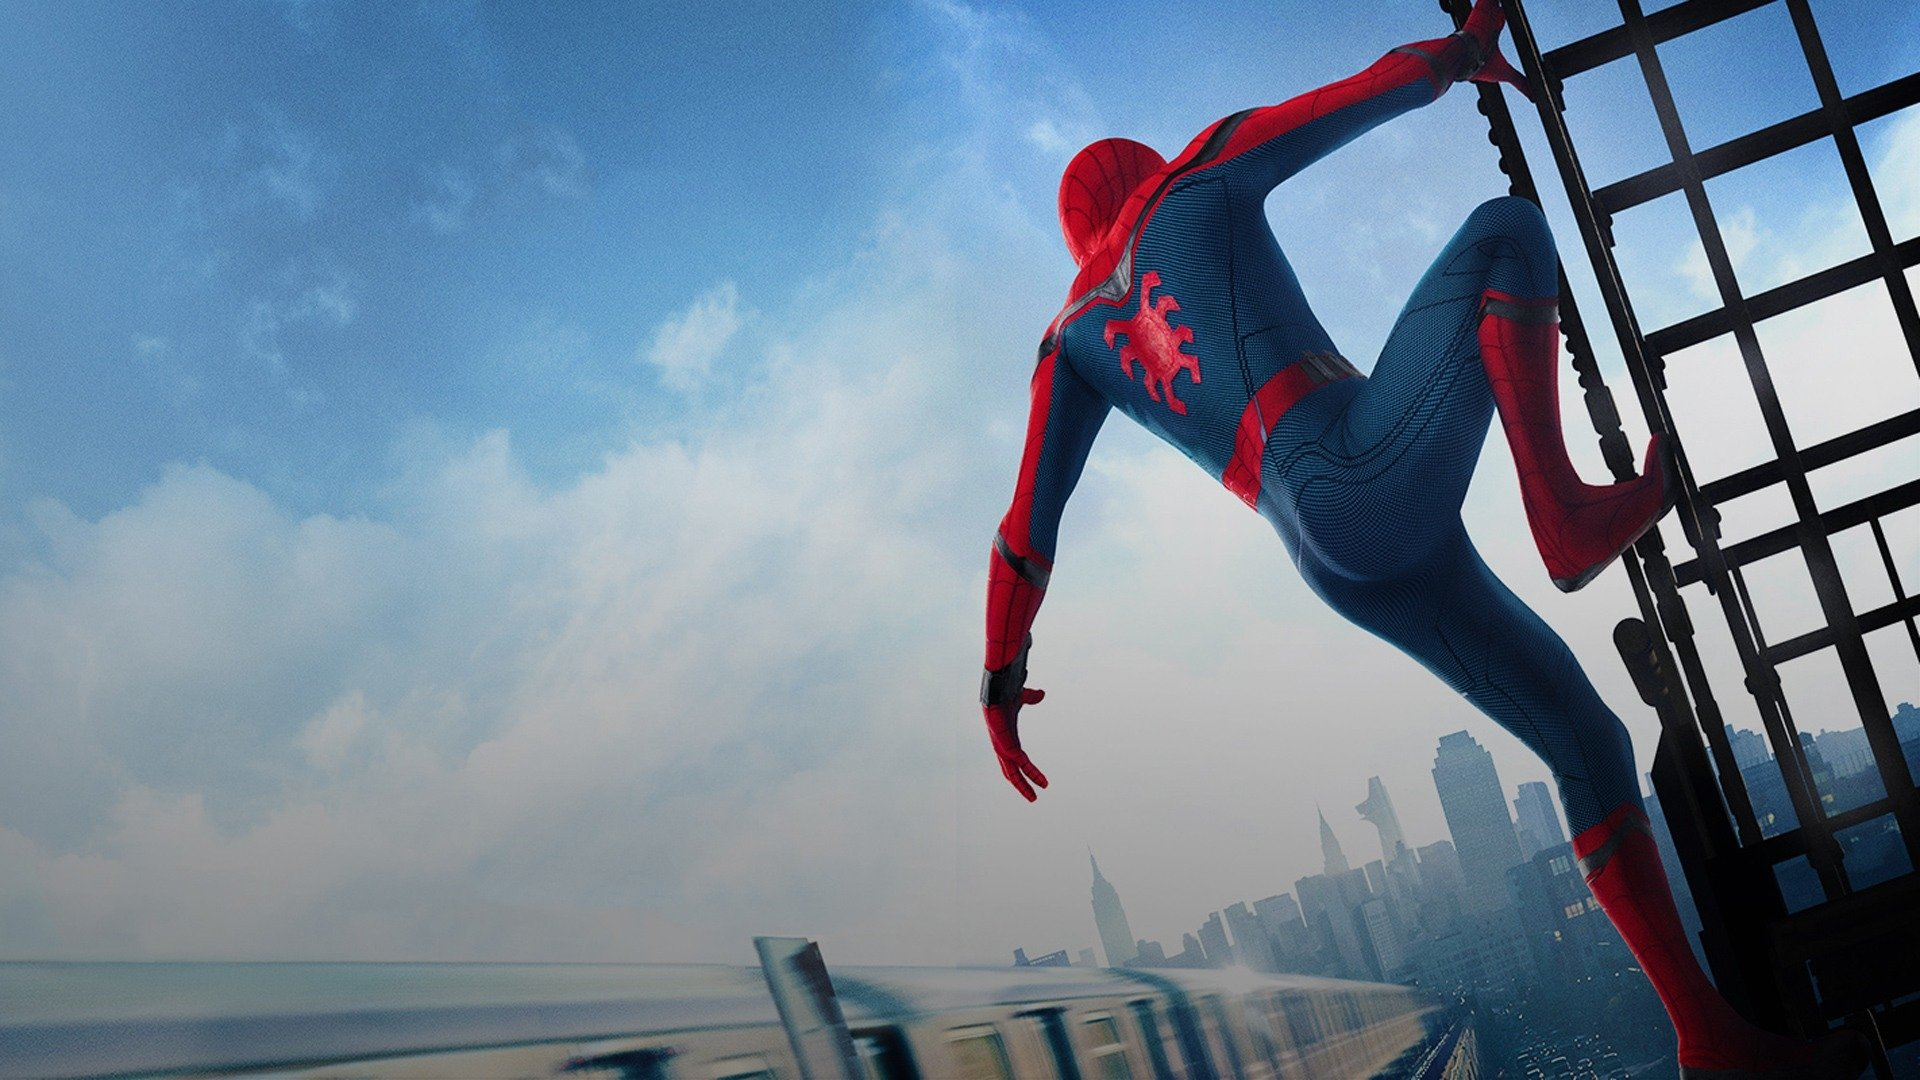 Spider Man Homecoming HD Wallpaper Background Image 1920x1080 1920x1080